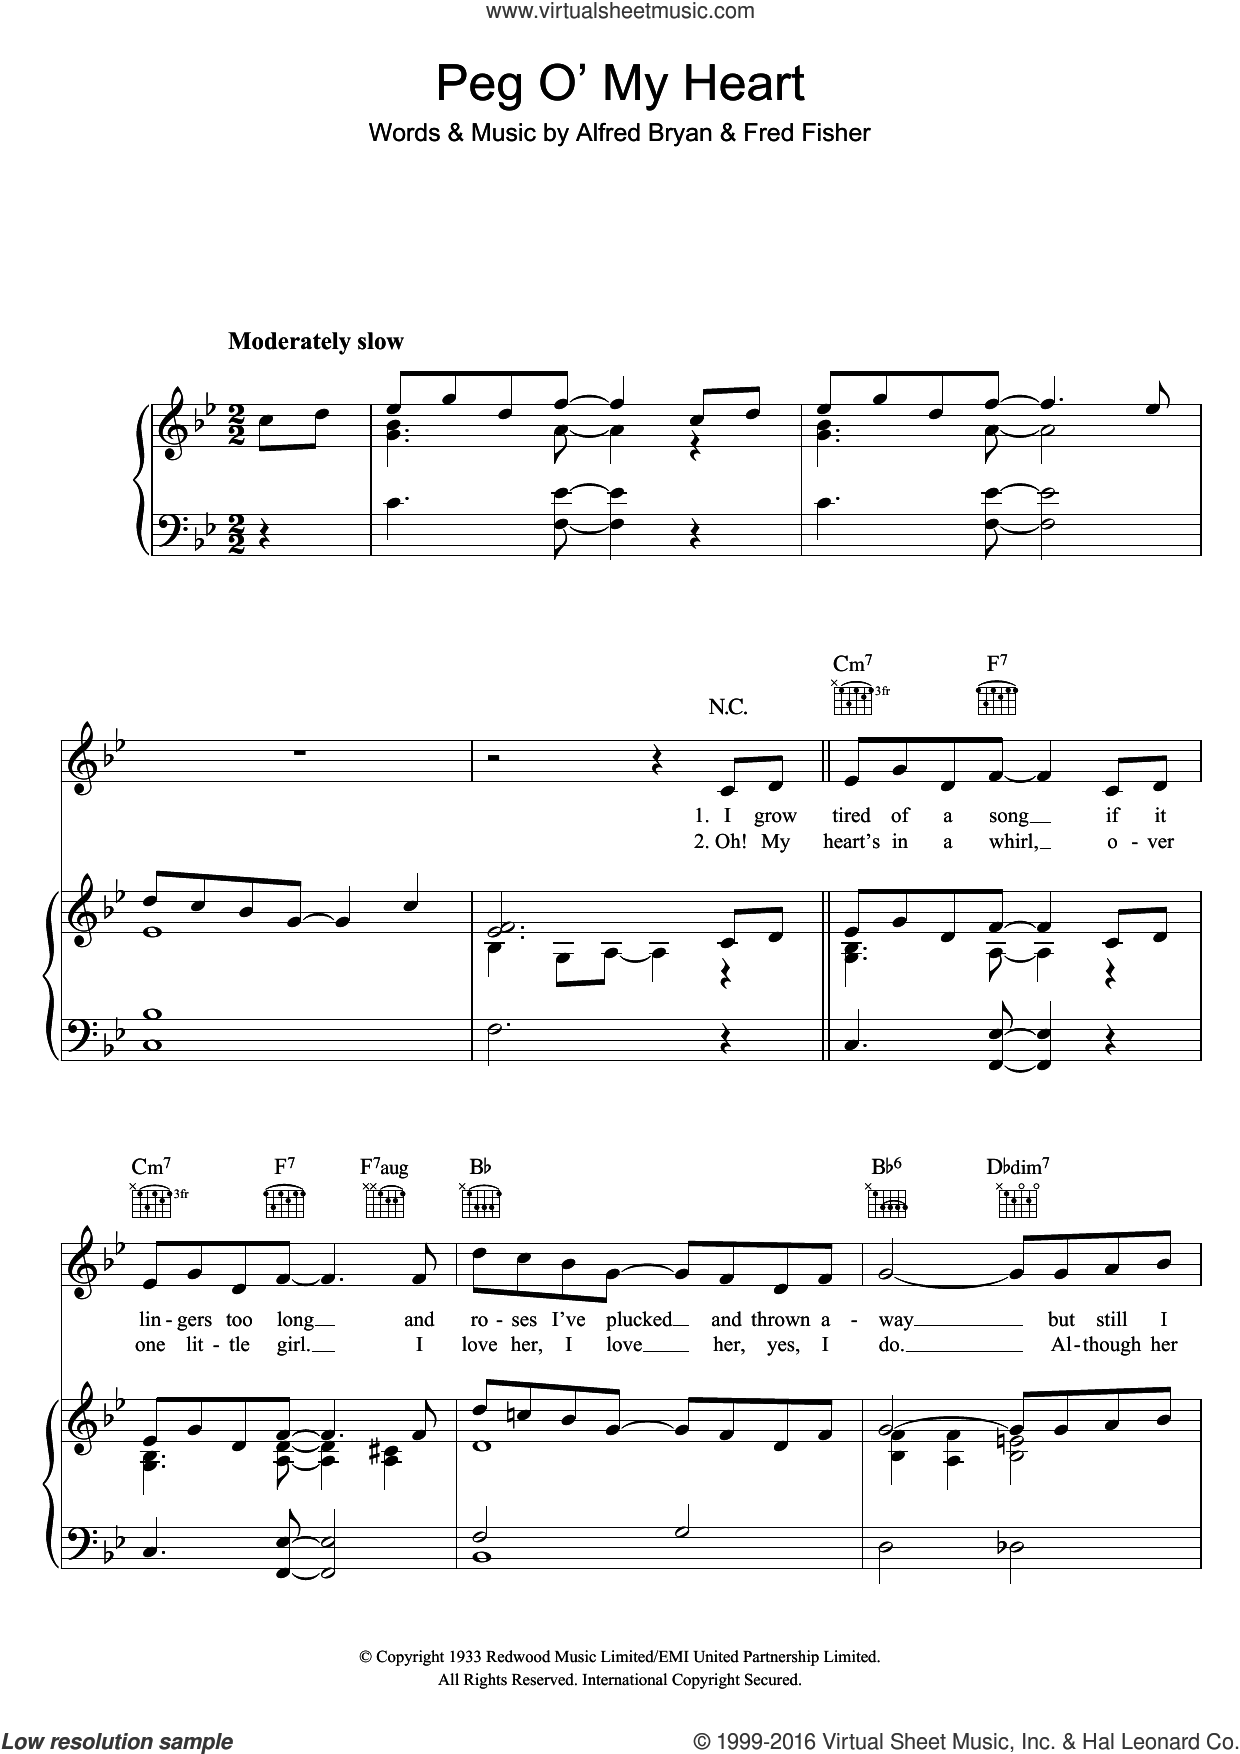 Peg O' My Heart sheet music for voice, piano or guitar by Max Harris, Alfred Bryan and Fred Fisher, intermediate skill level